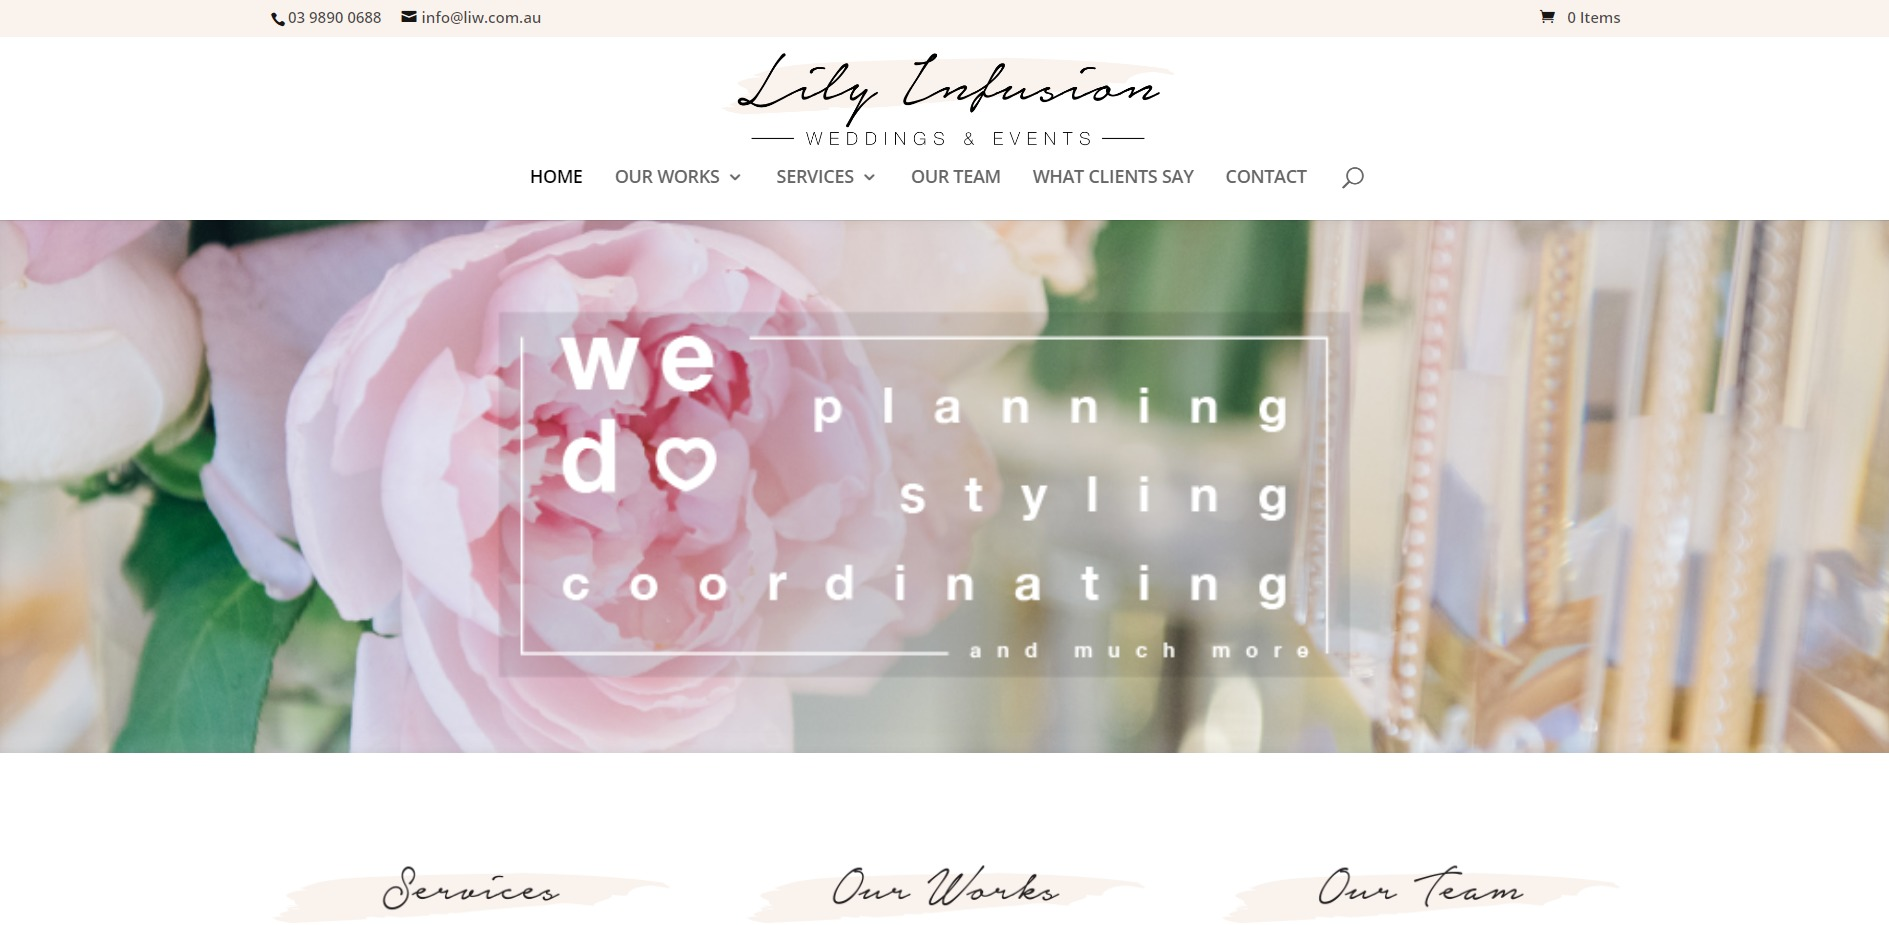 Lily Infusion Weddings & Events